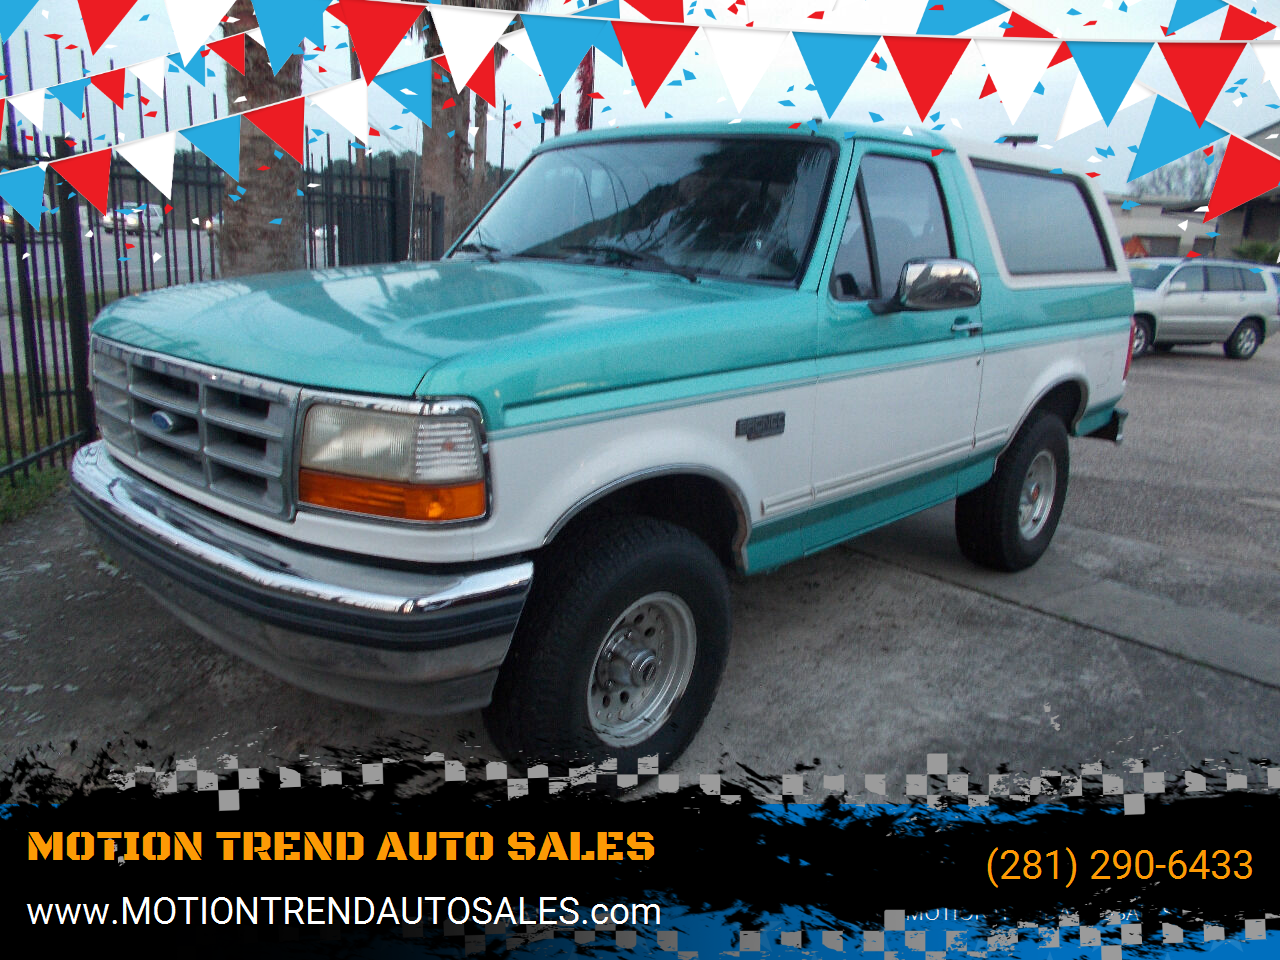 Used Ford Bronco For Sale In Houston Tx Carsforsale Com